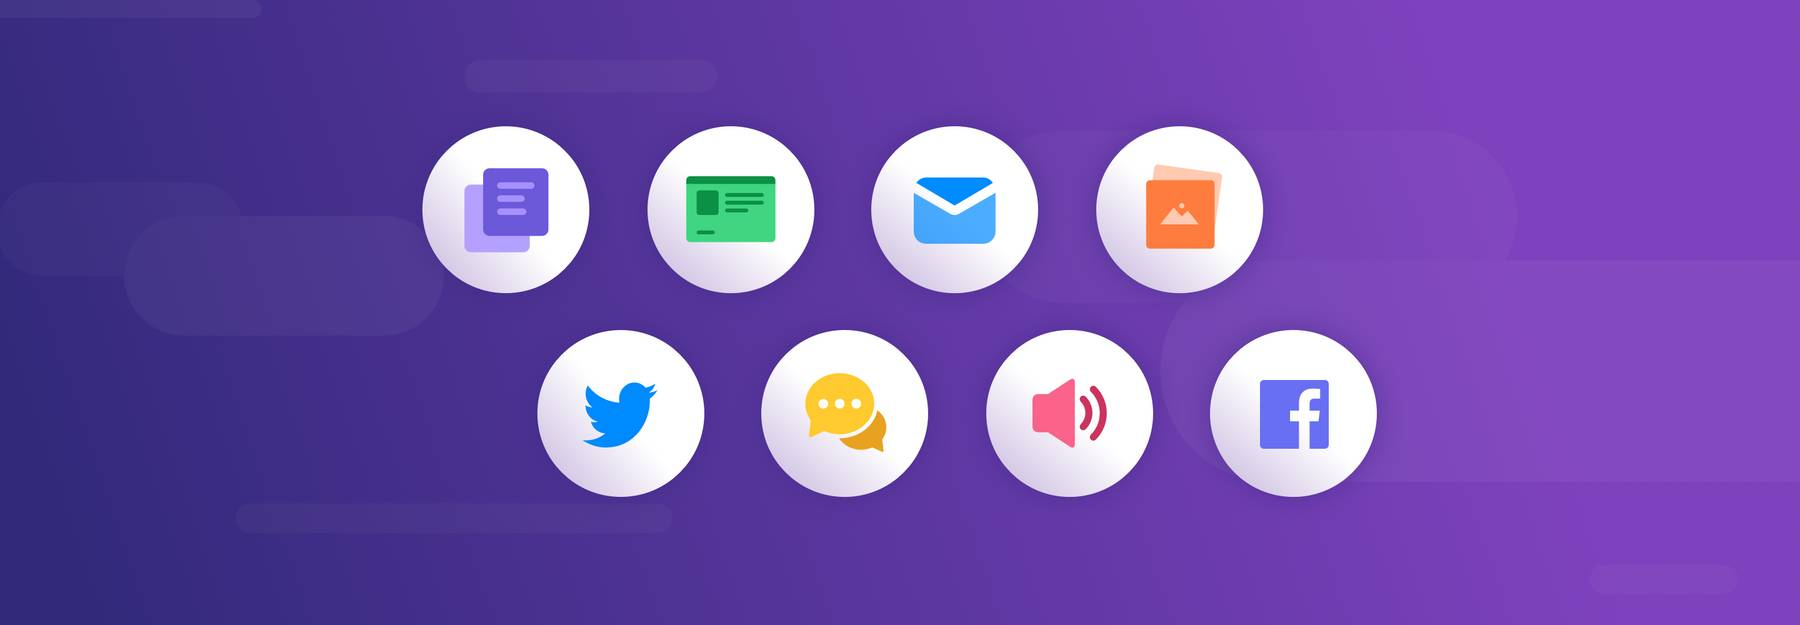 Unstructured data examples, like twitter, emails, chat, images, audio, and more